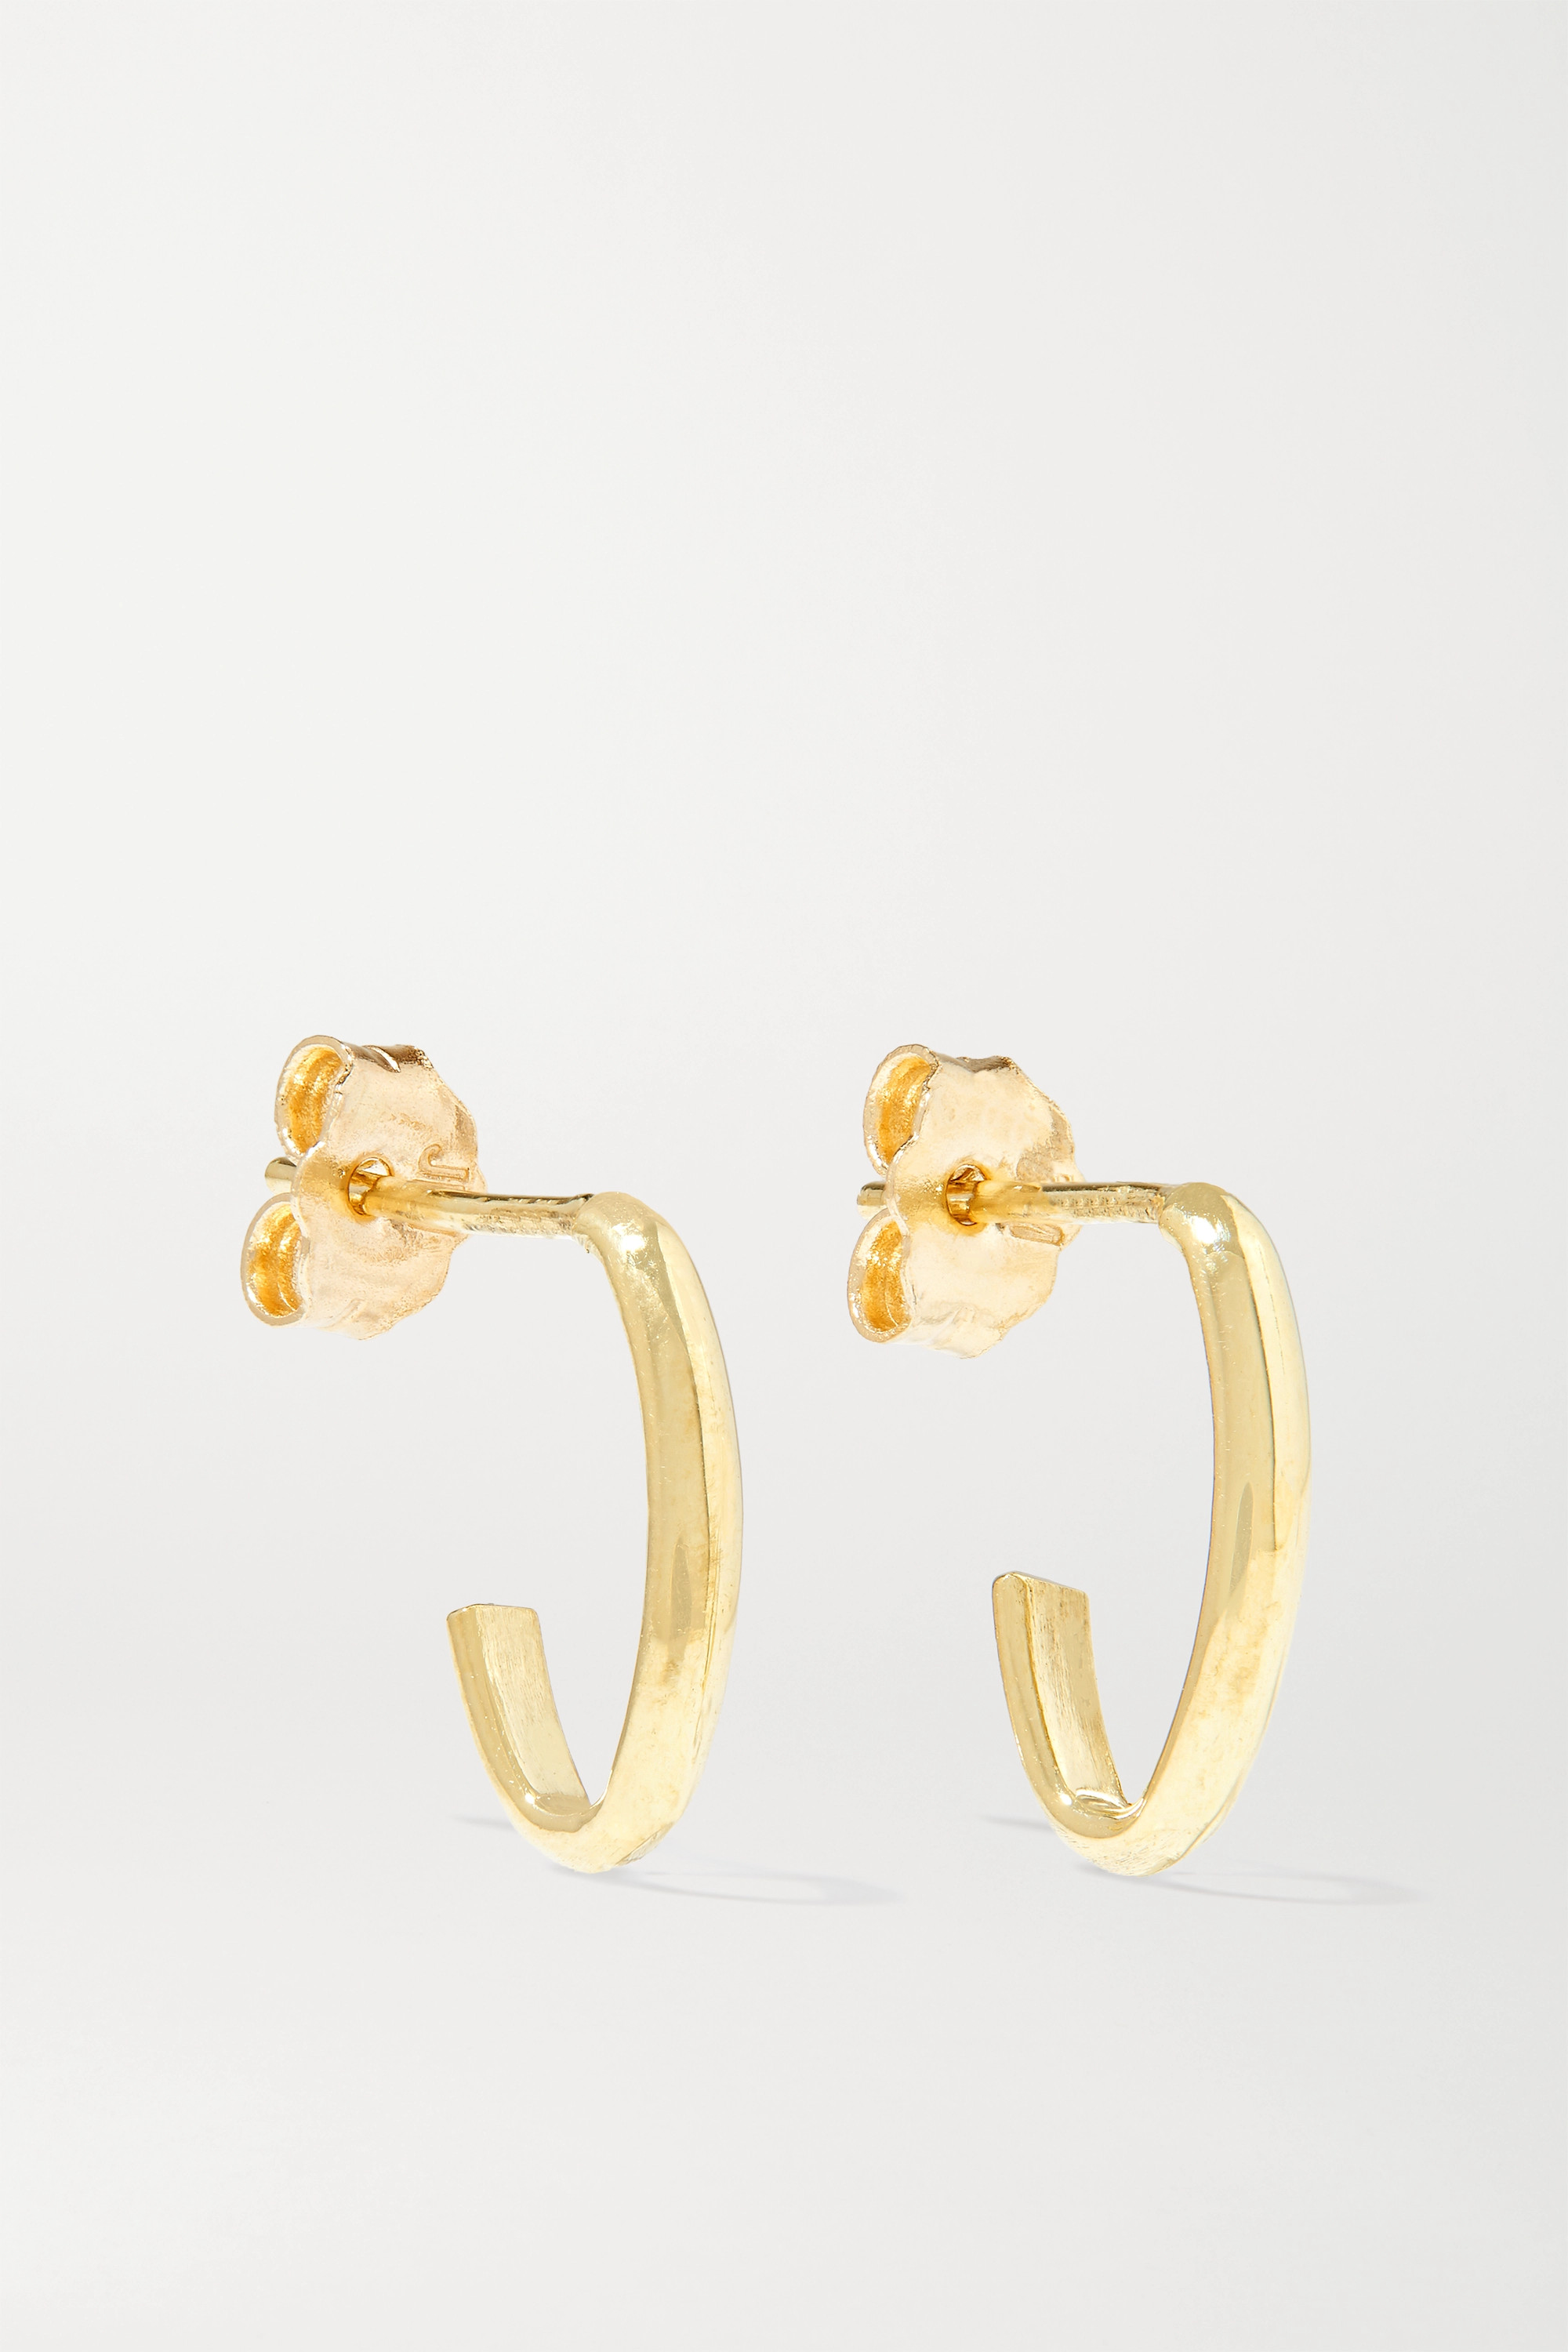 JENNIFER MEYER Edith Link 18-karat gold earrings